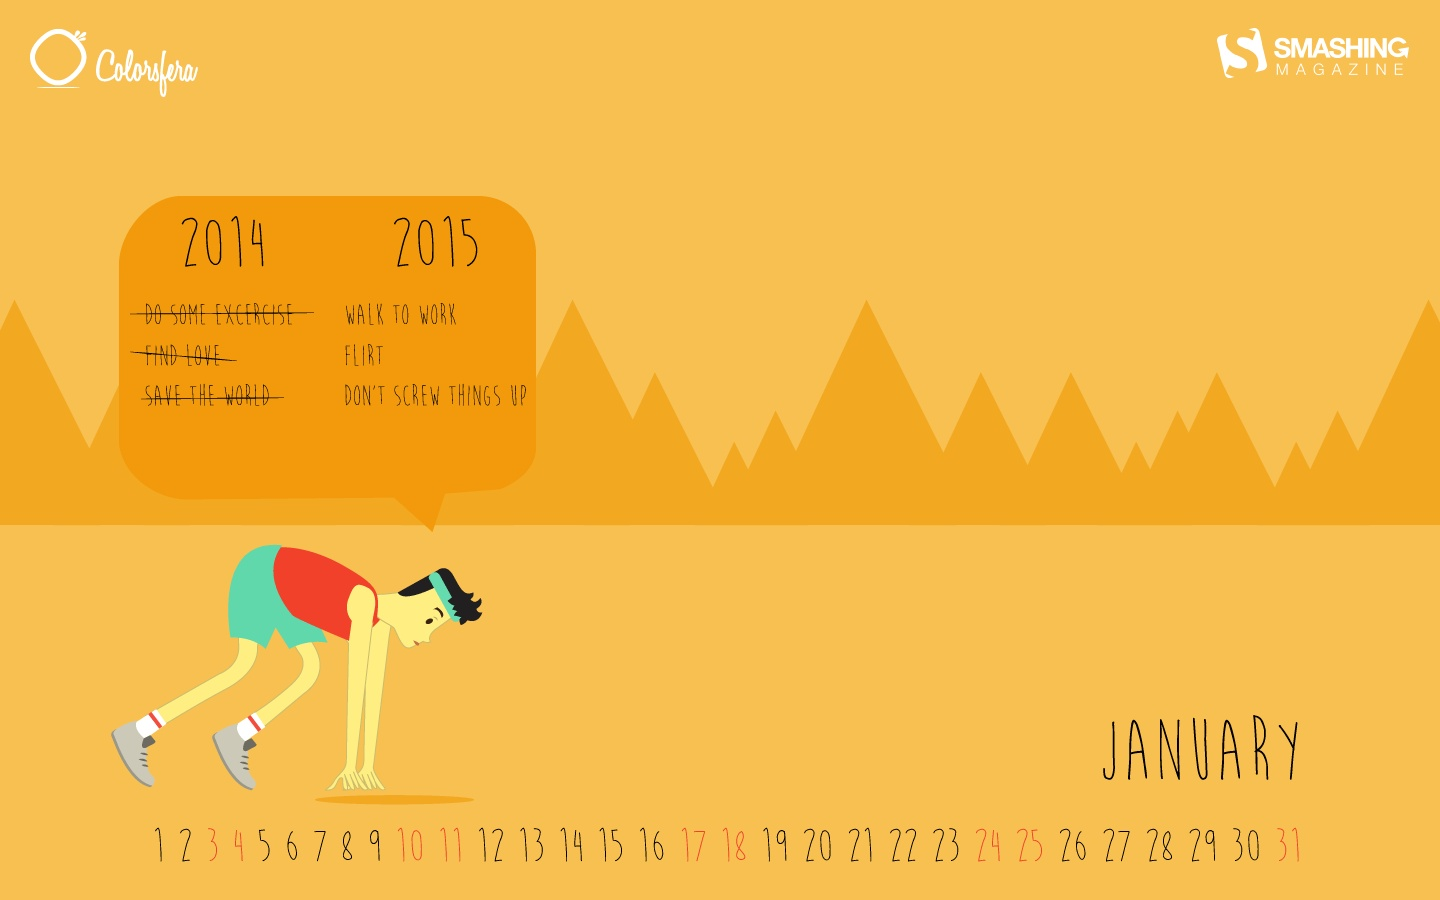 In January Calendar Wallpaper 51339